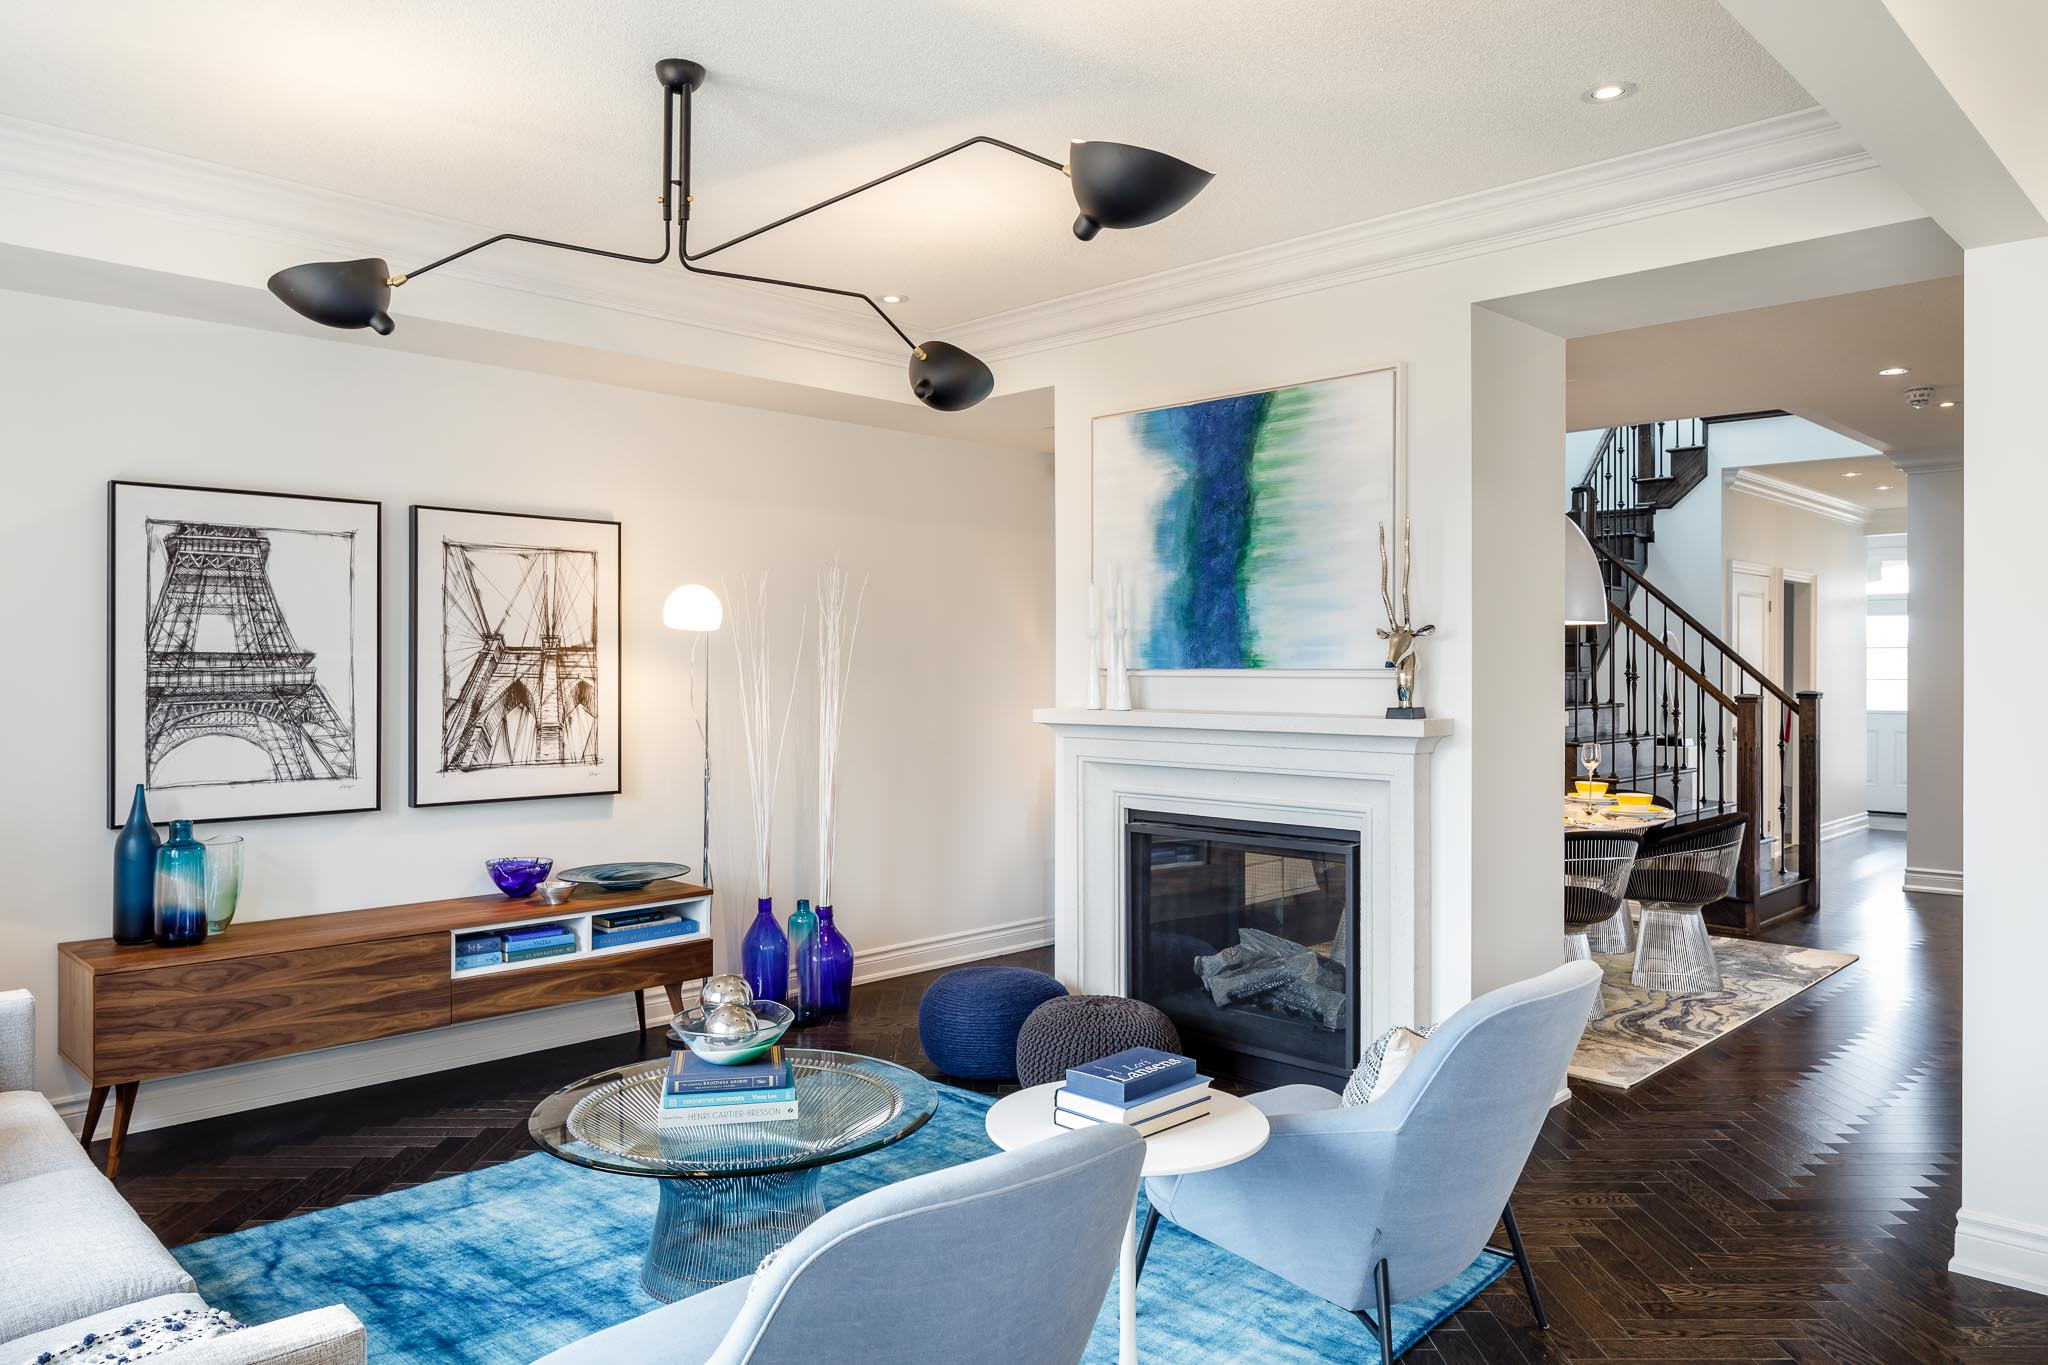 Great Gulf Westfield living room with blue rug, chairs, and artwork, and wood console table